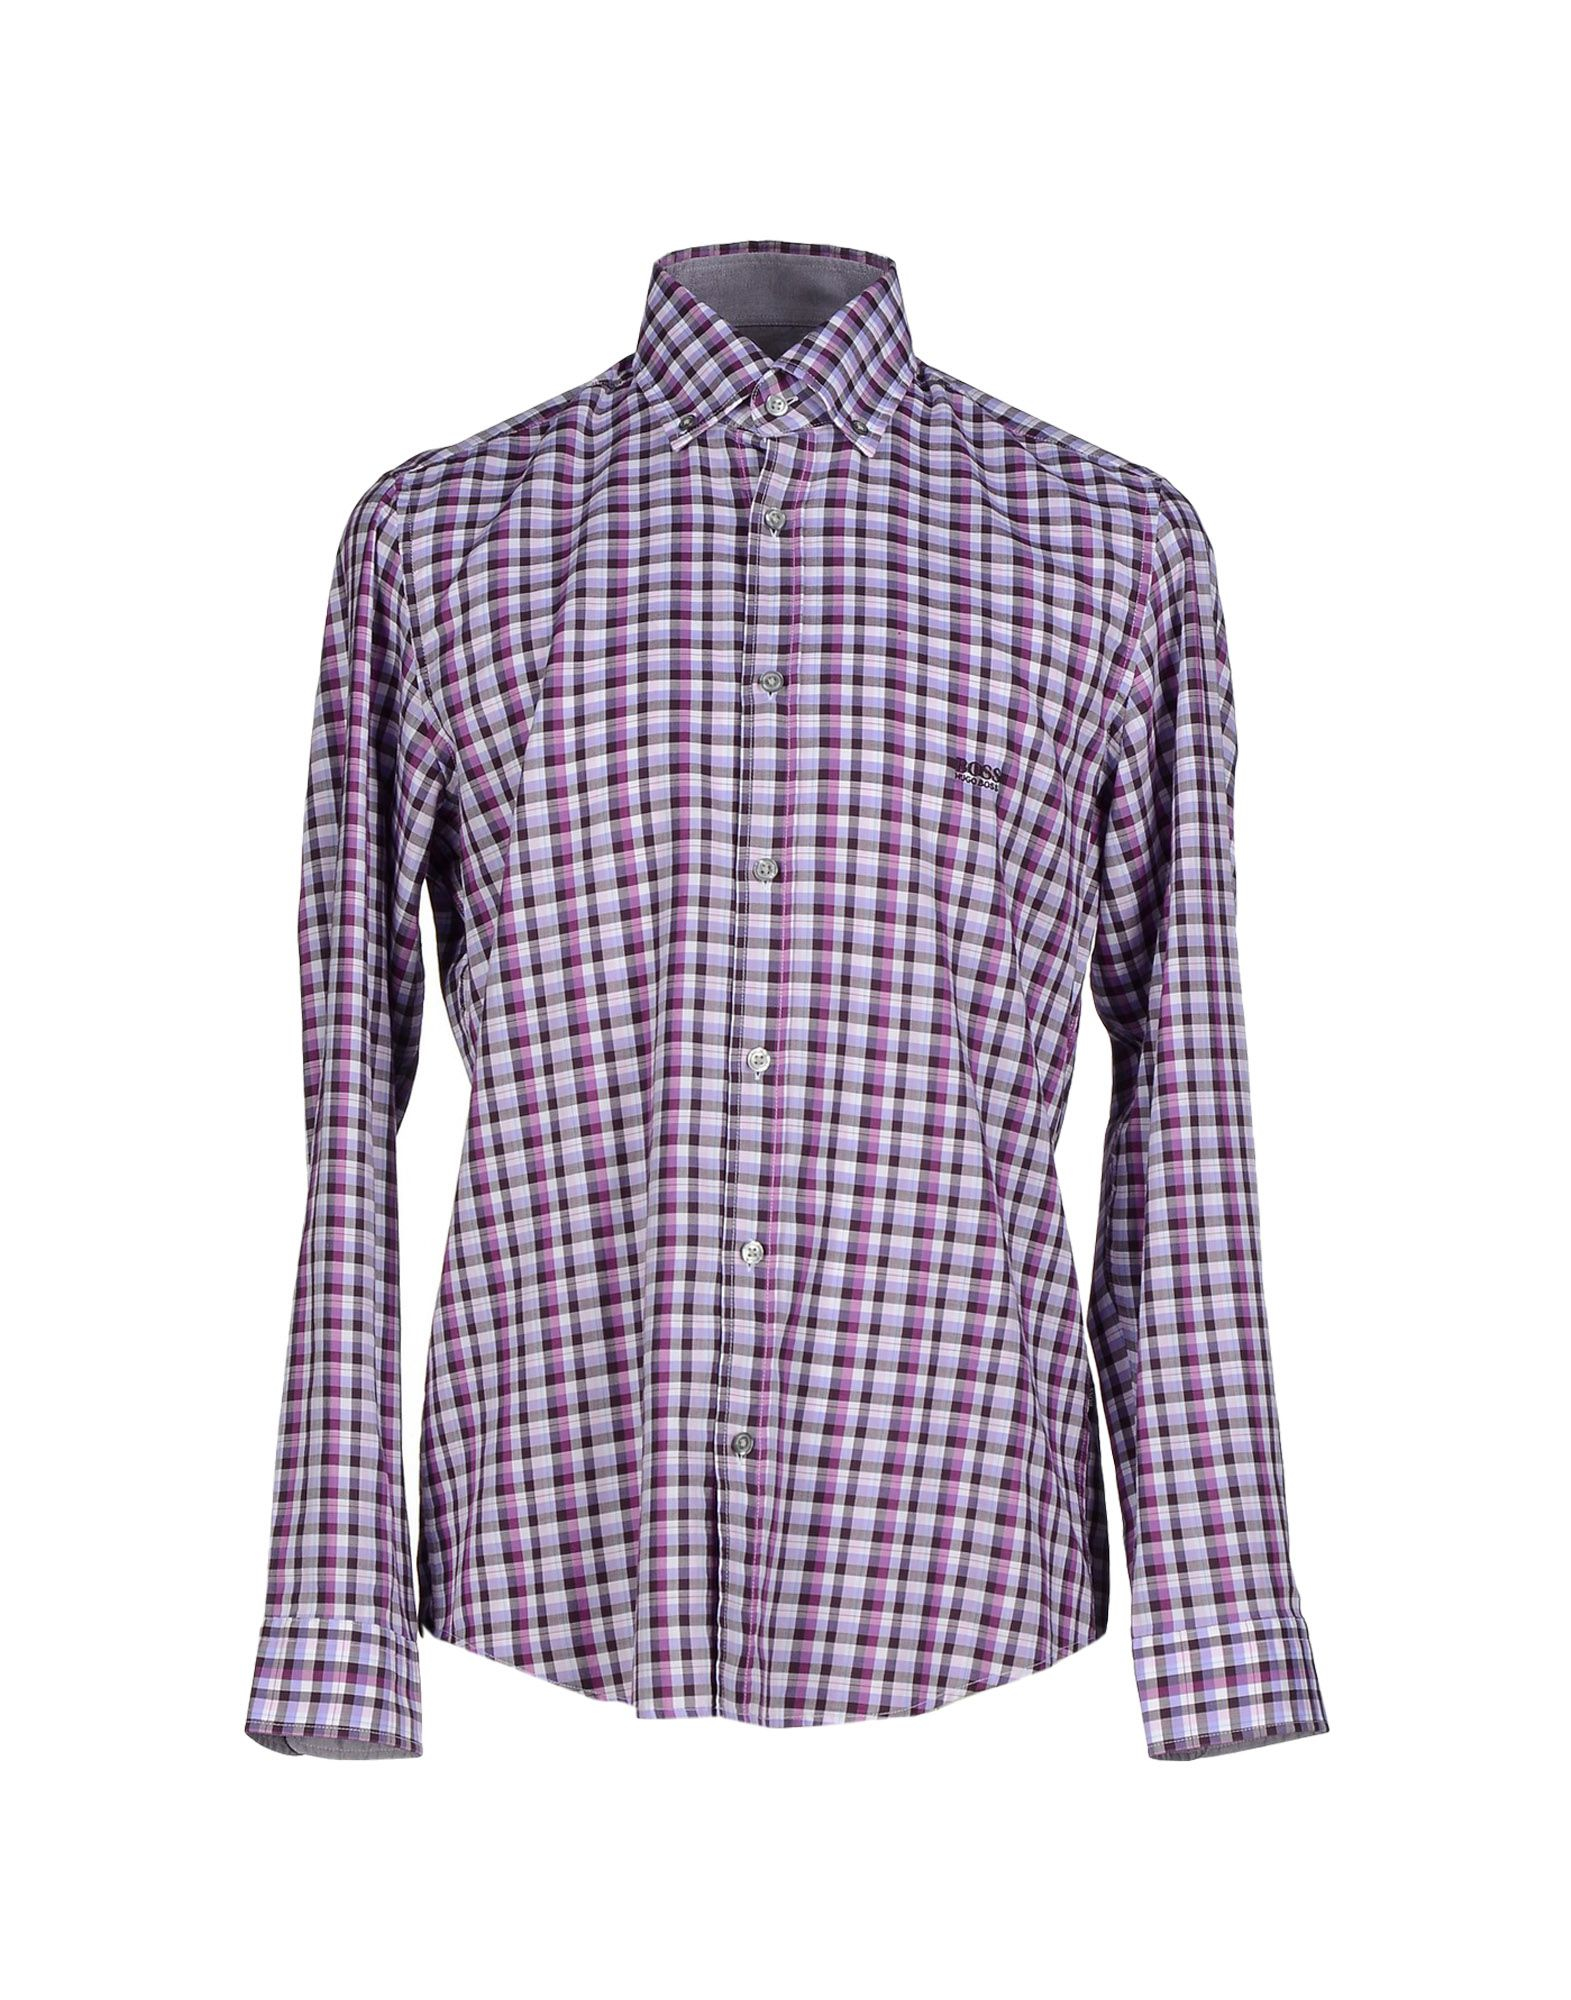 Lyst boss black shirt in purple for men Light purple dress shirt men